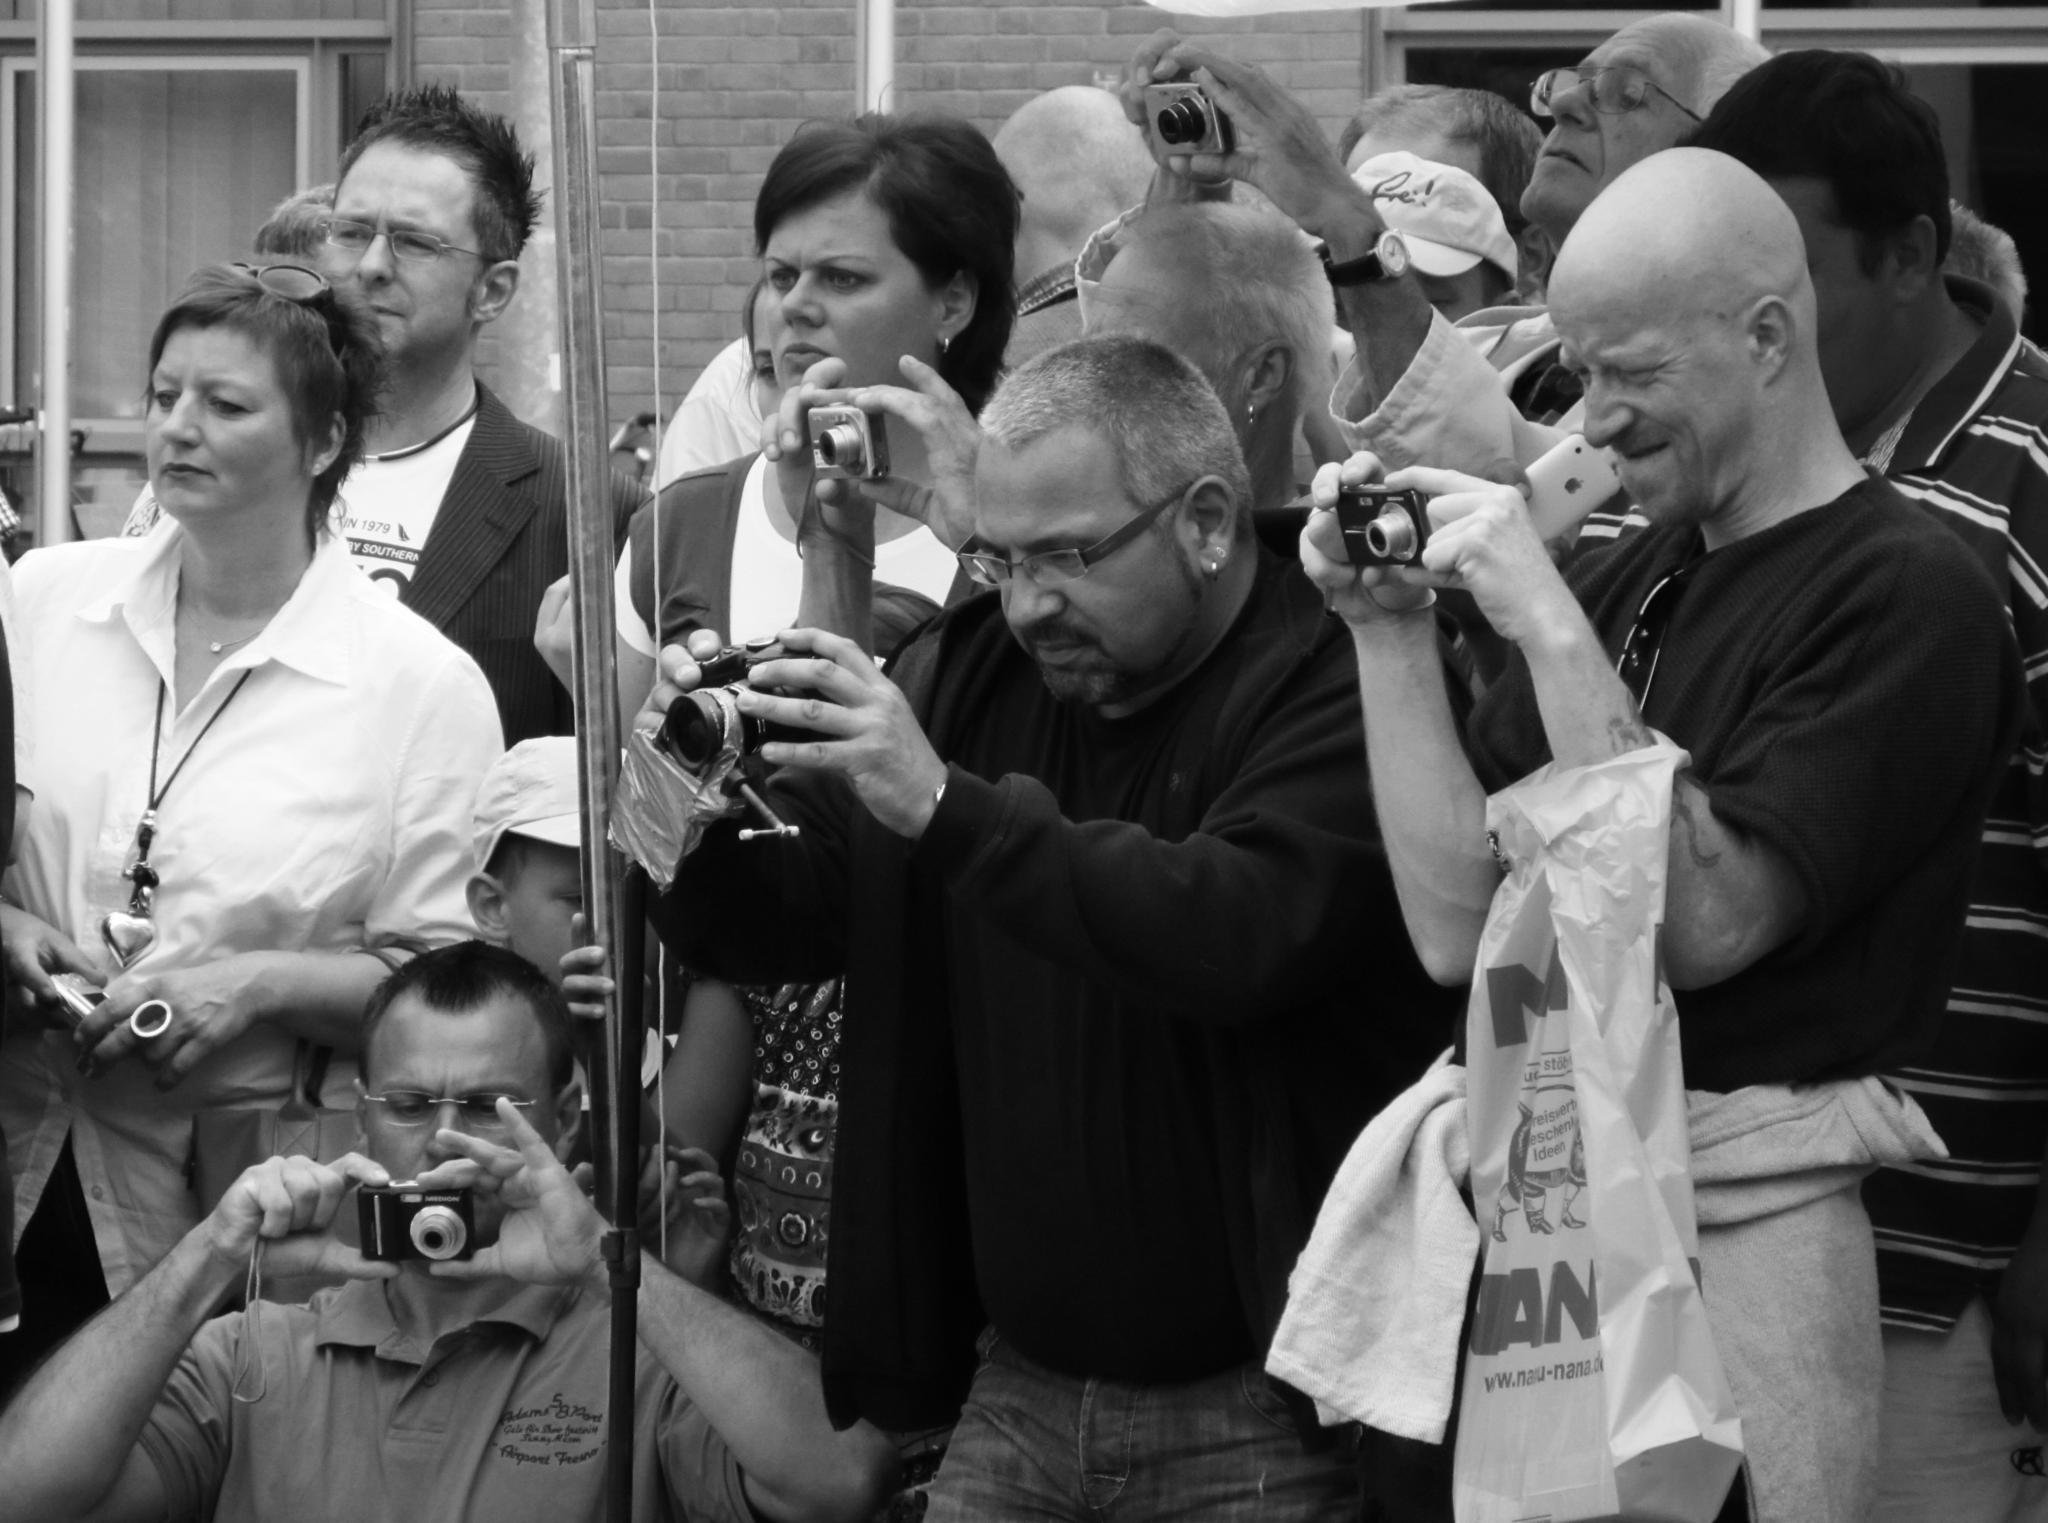 Pictured Photographers by Harry Schäfer